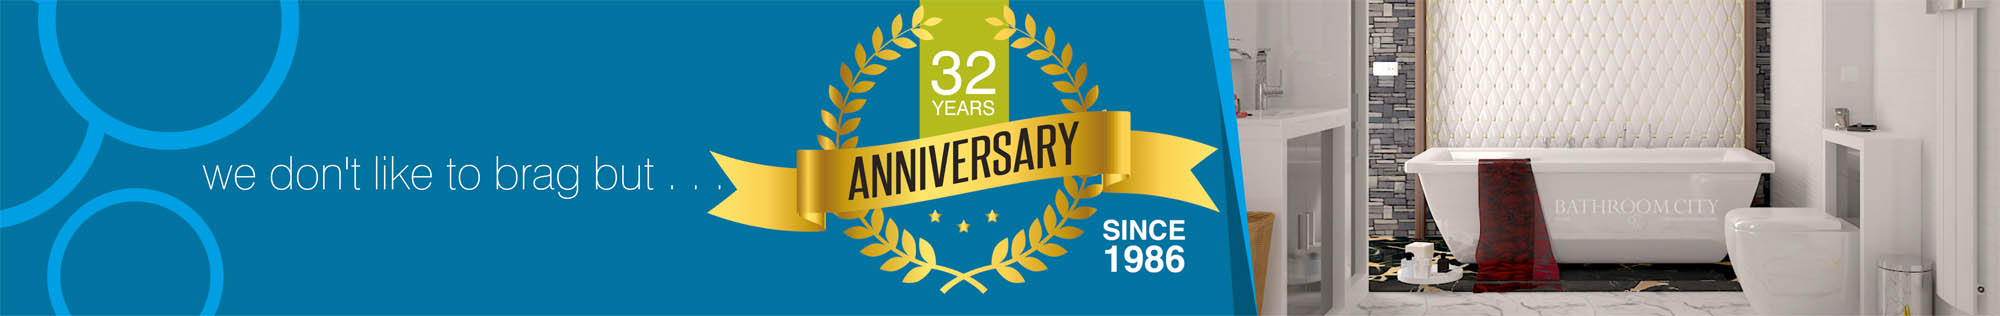 We don't like to brag, but we've been providing our service for 30 years!